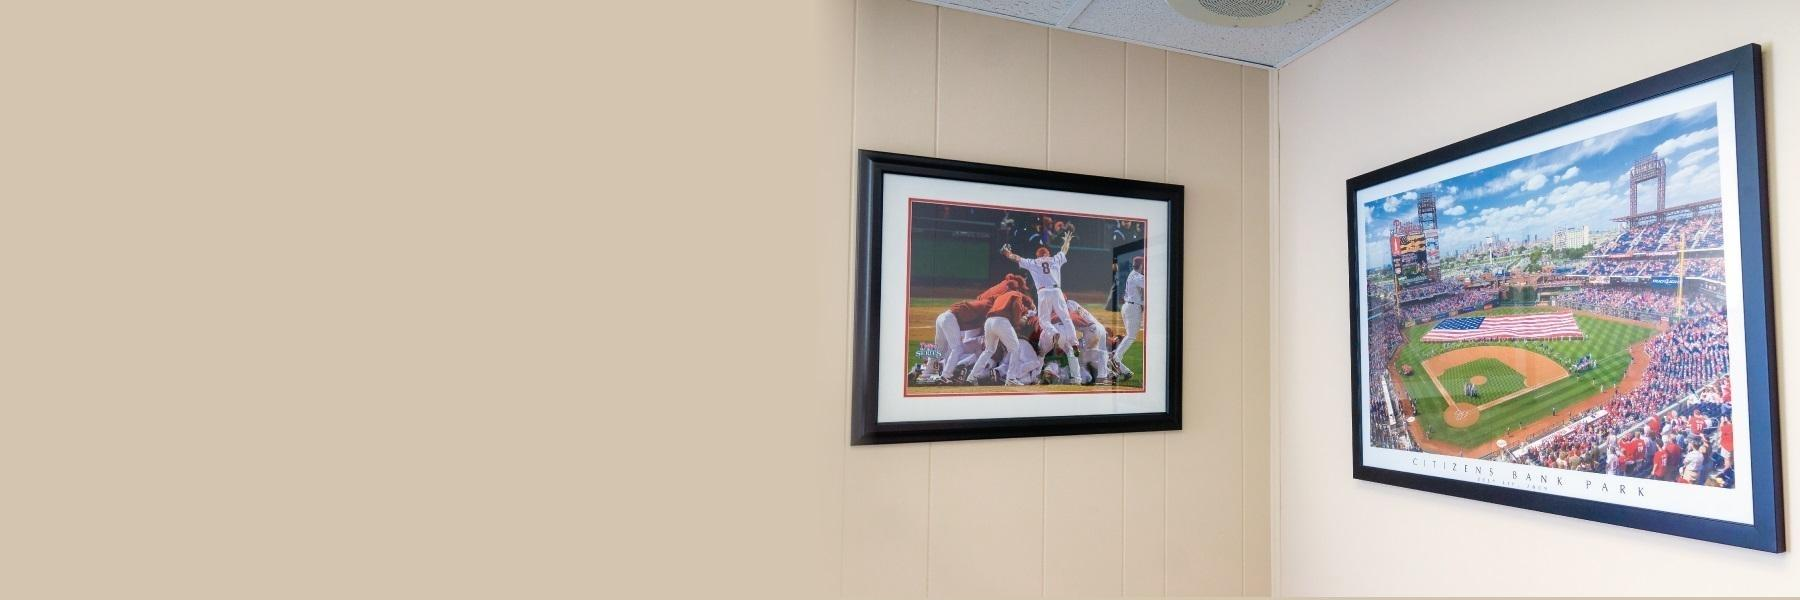 two framed baseball photos on wall of dental office | dental bridge | philadelphia